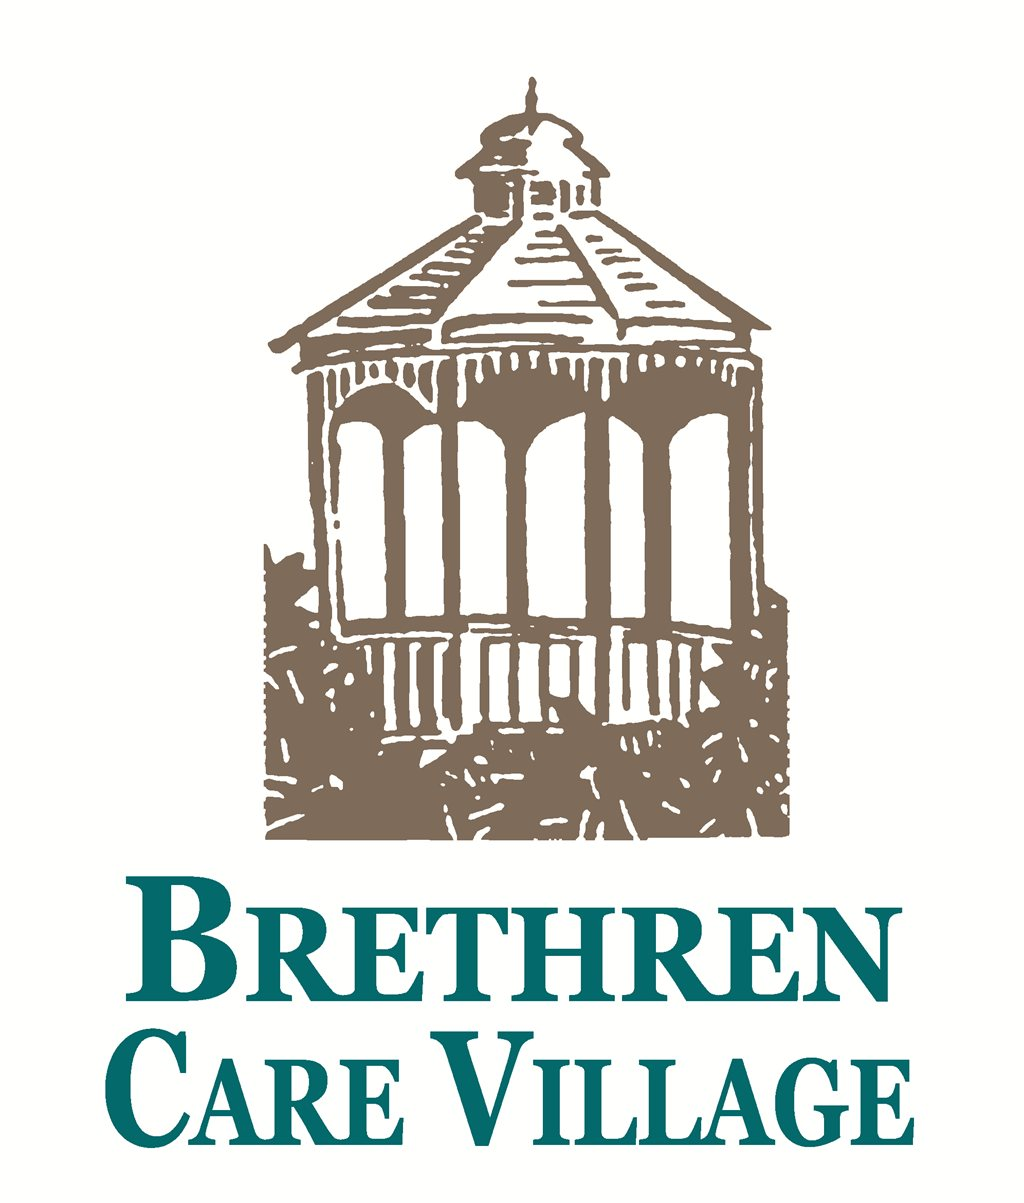 Brethren Care Village at Ashland, OH